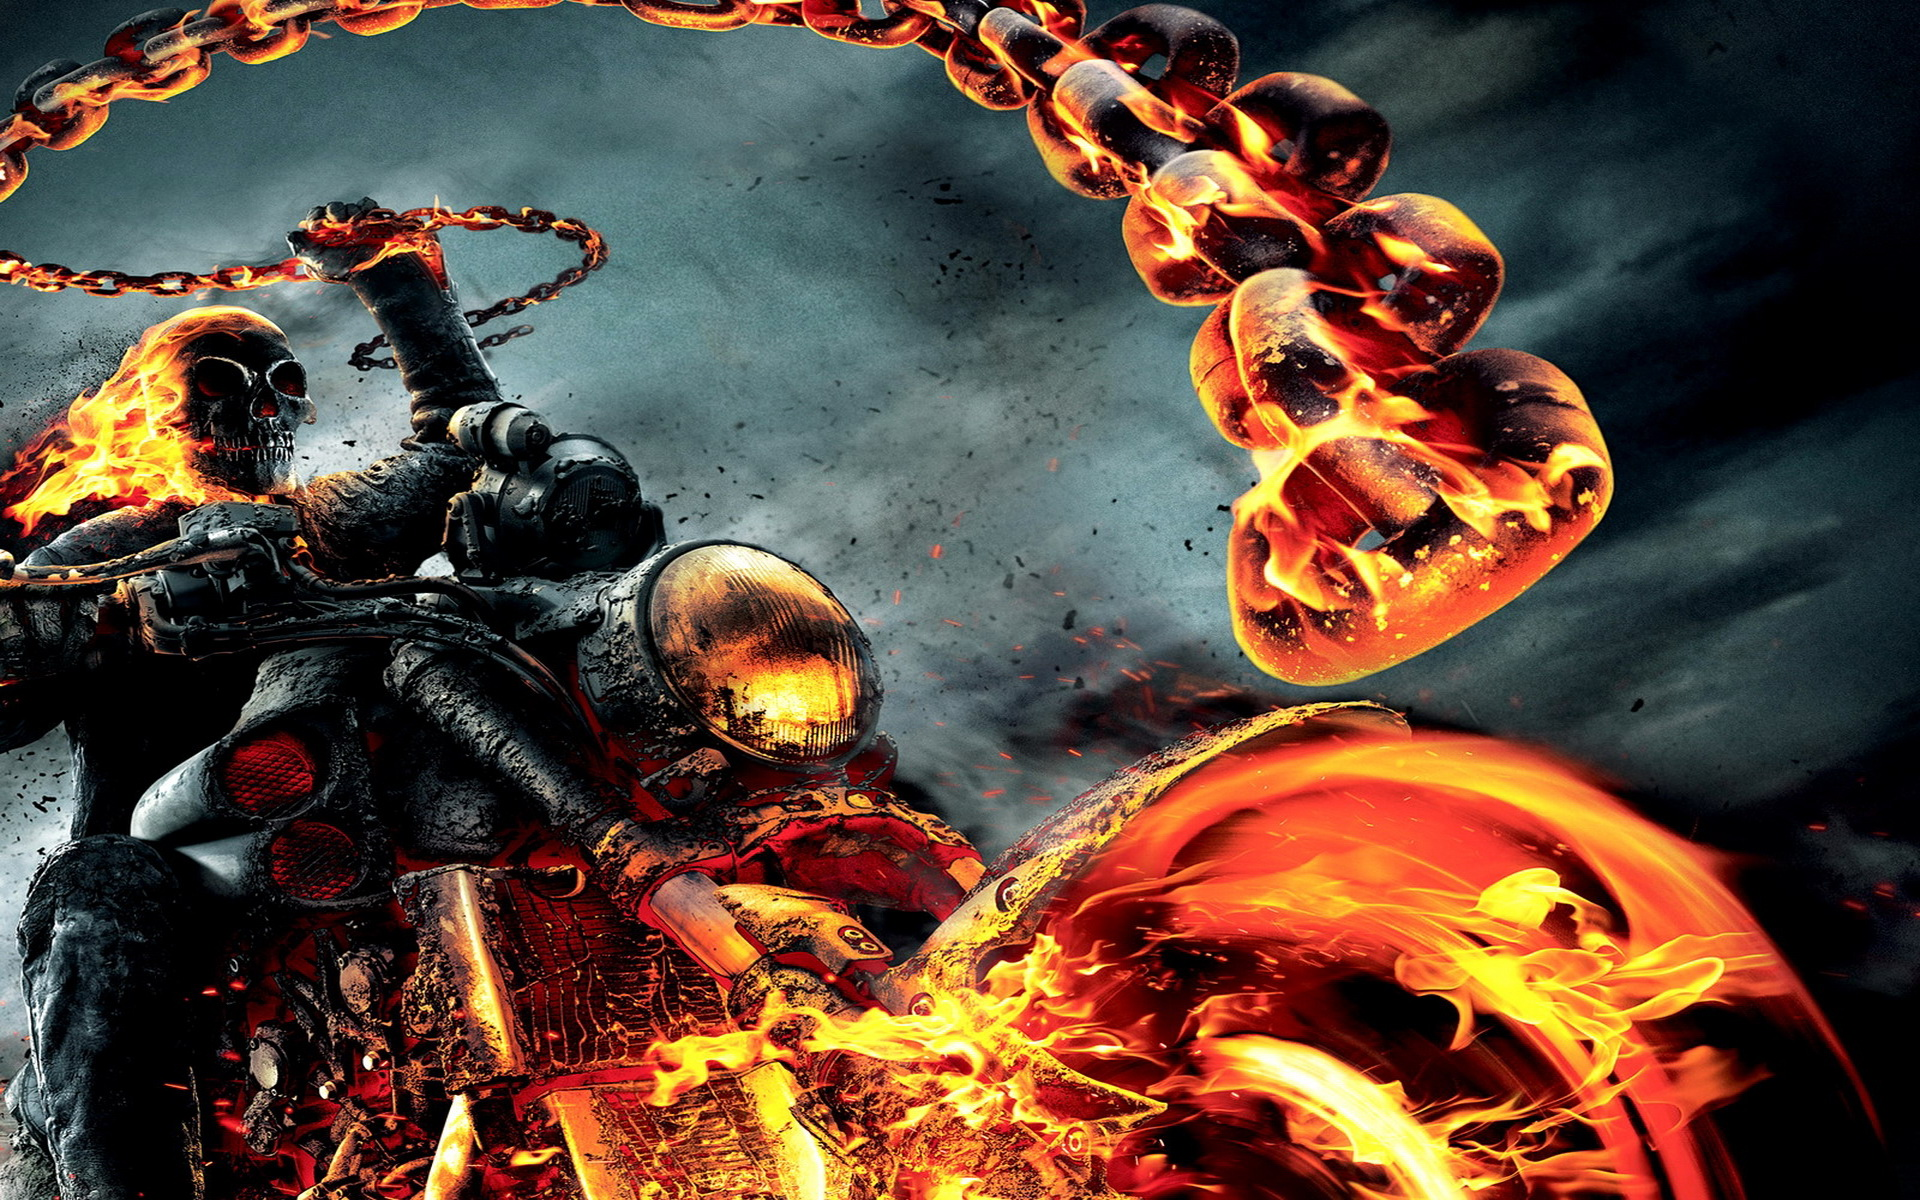 Ghost Rider 2 Wallpapers HD Desktop Wallpapers 1920x1200